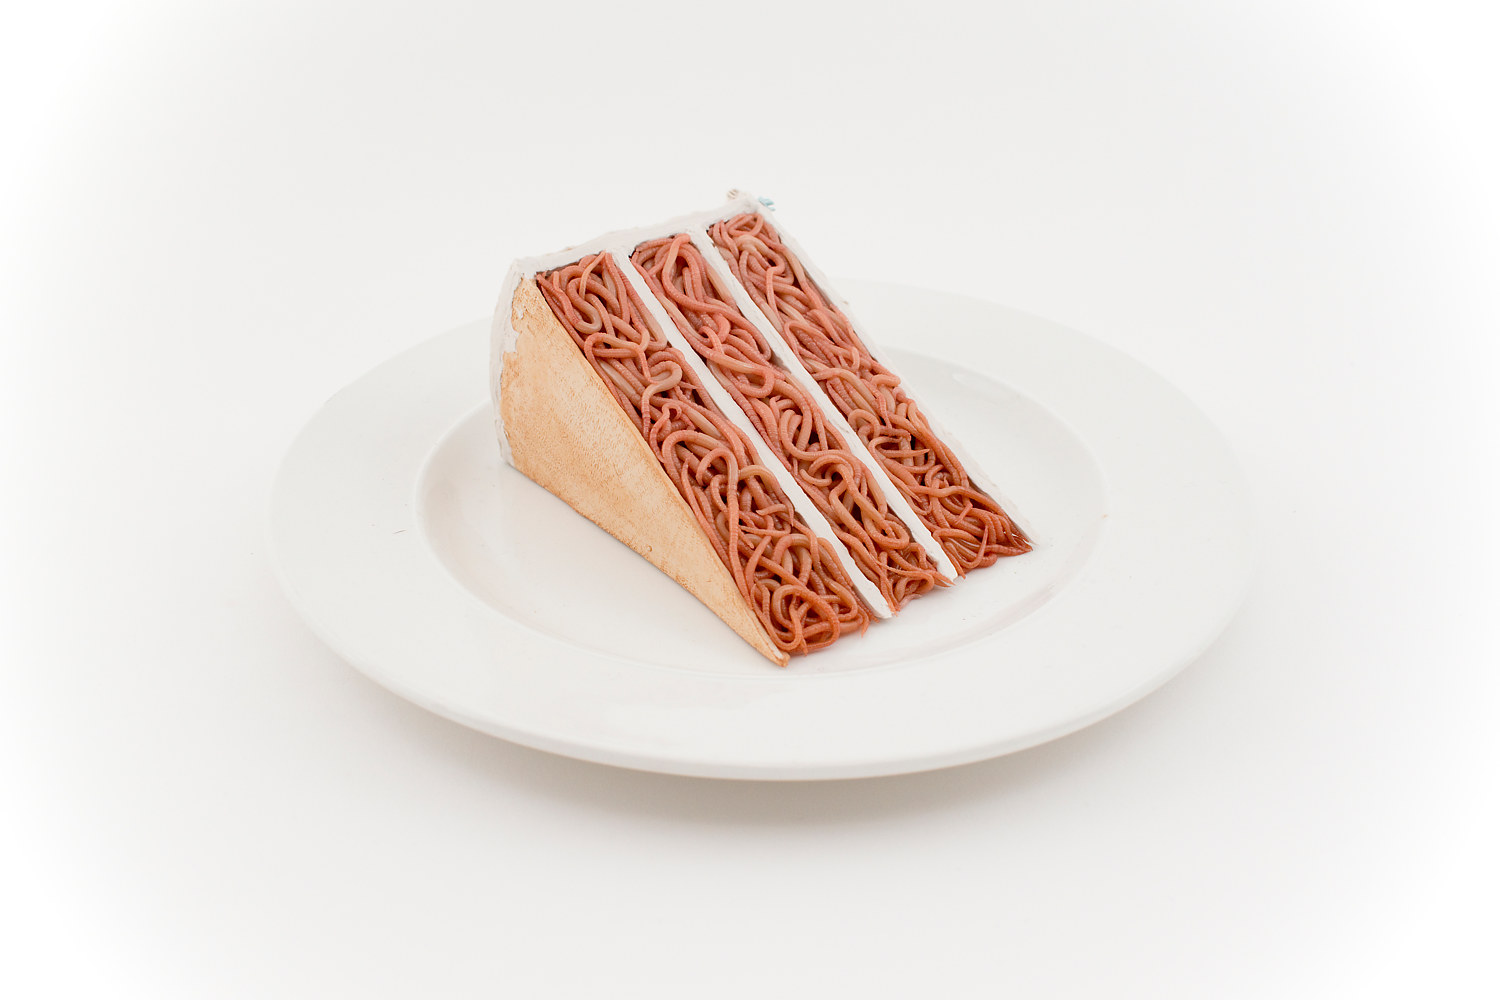 ceramic cake slice with white and blue icing on a white plate by Matthew  Dercole